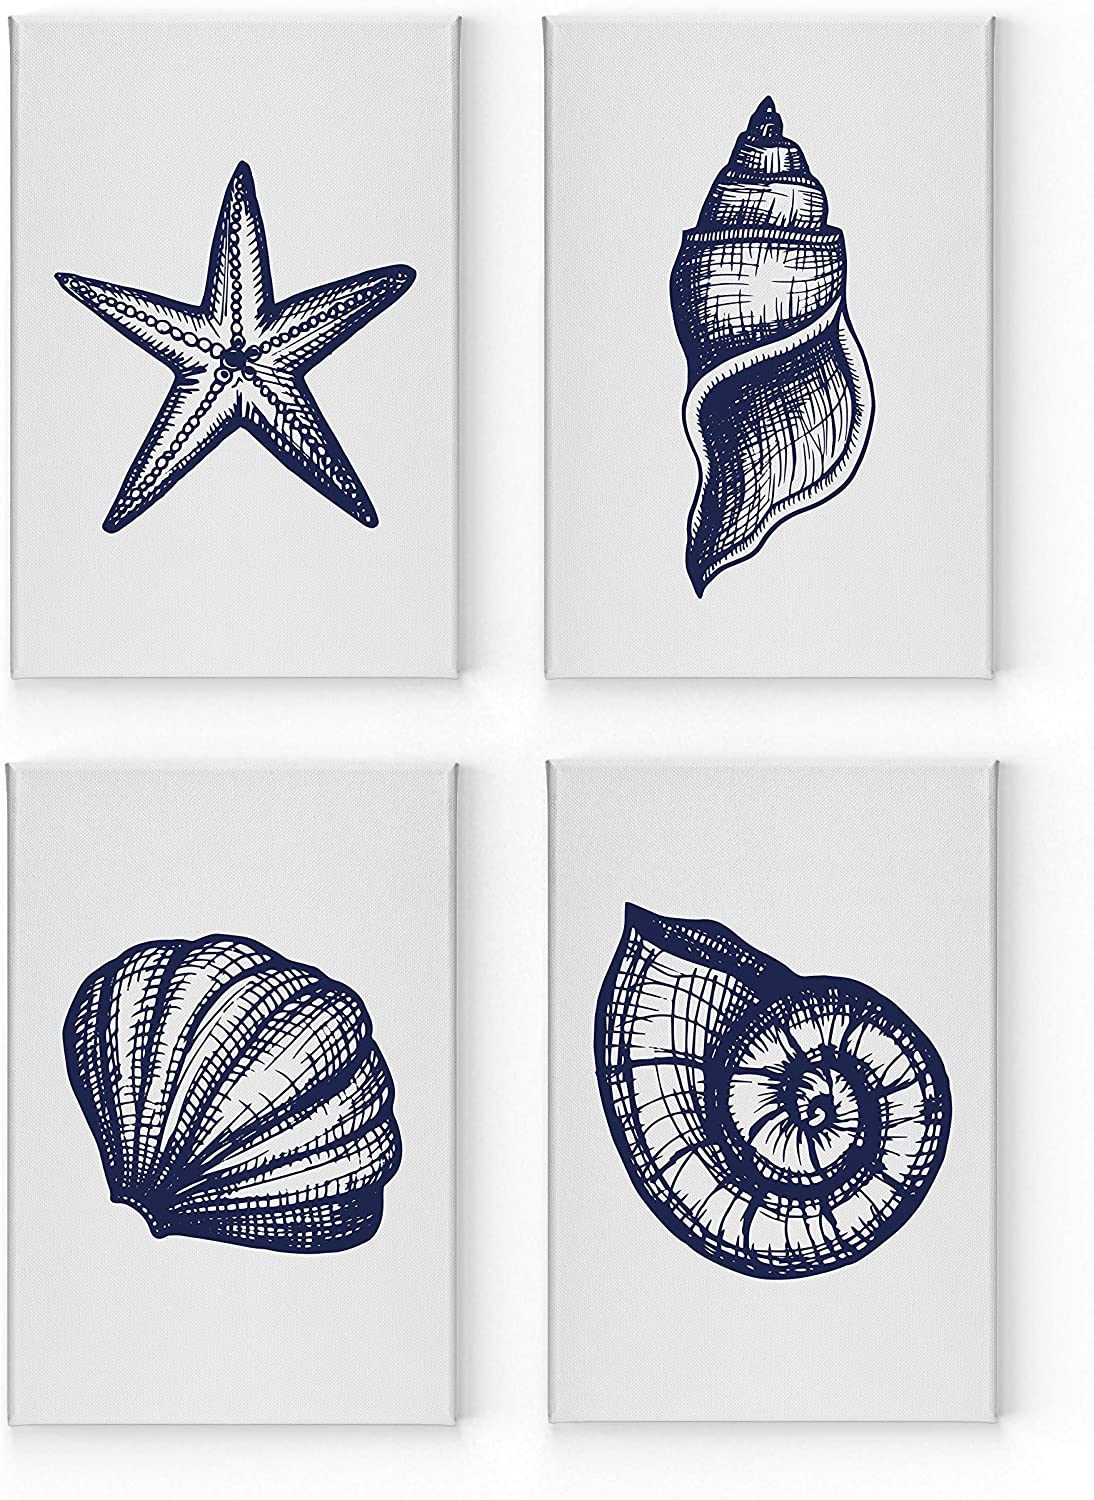 Amazon Com Seashells Navy Blue Illustration White Background Nautical Decor 4 Panel Canvas Print Set Coastal Wall Art Home Decor Stretched Ready To Hang 100 Handmade In The Usa 12x8 X4 Posters Prints